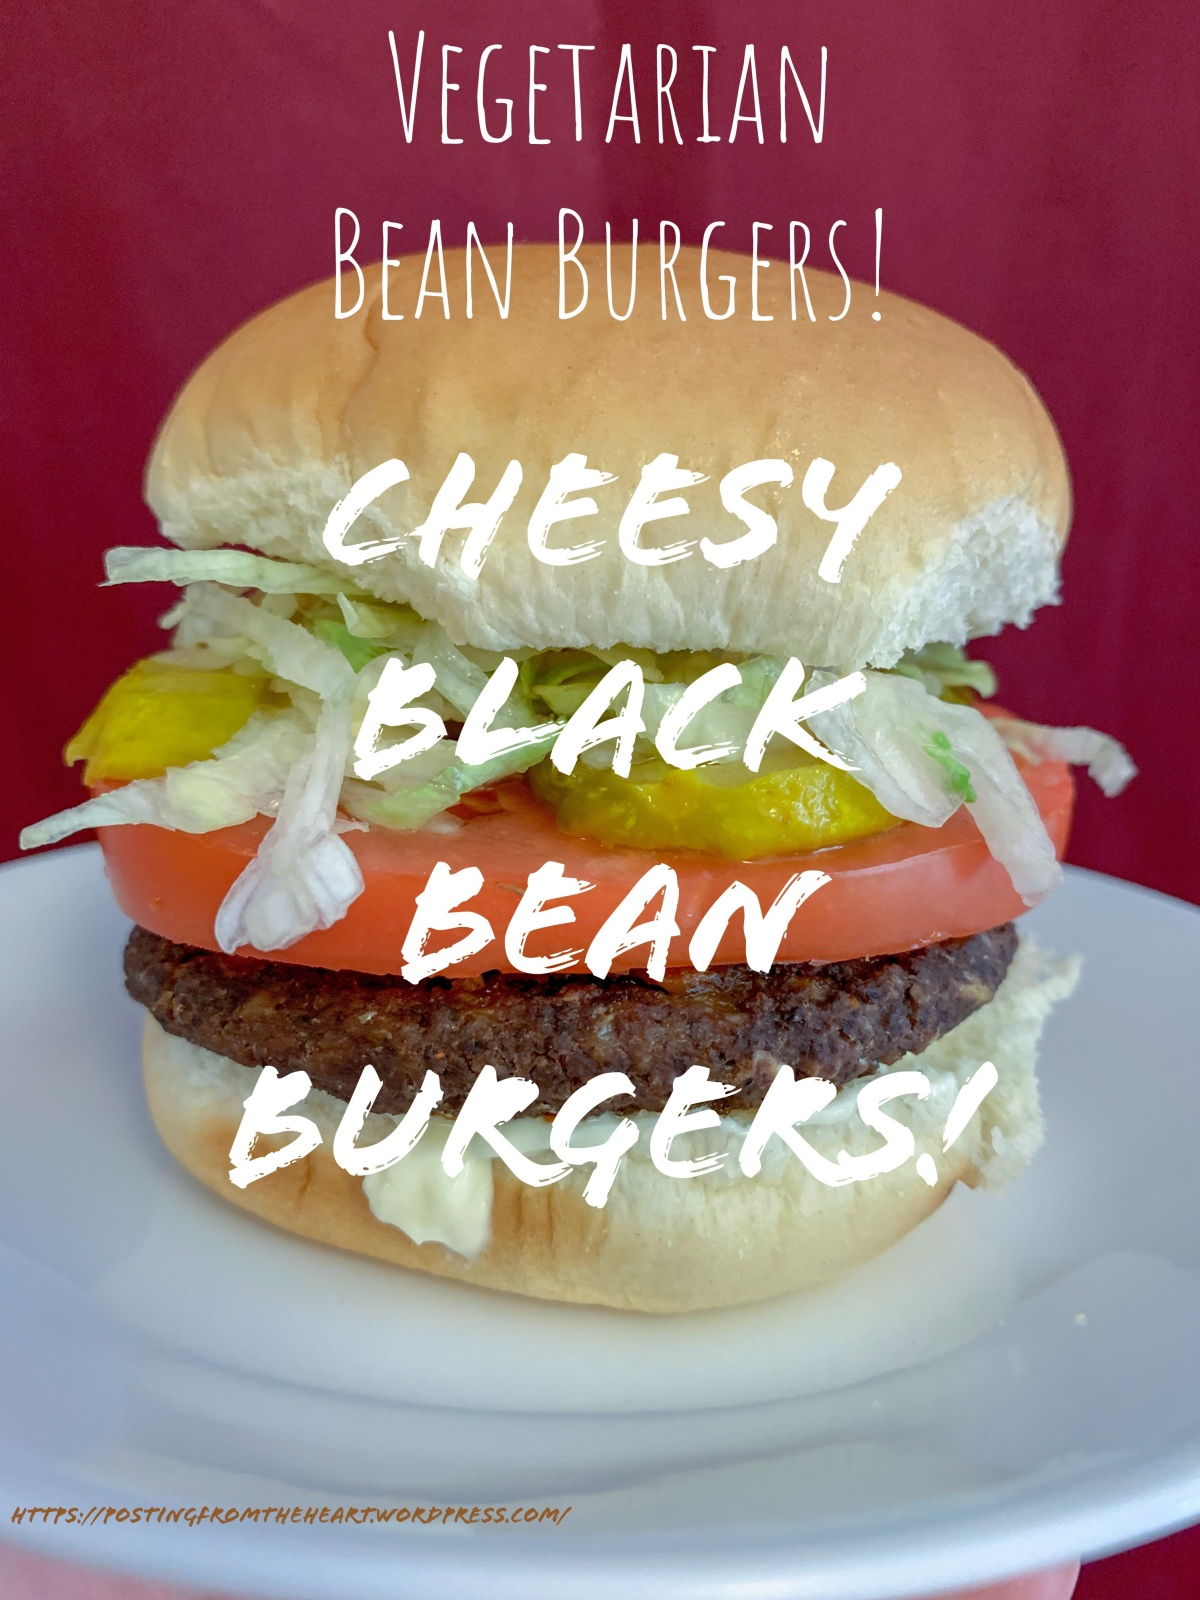 Vegetarian Bean Burgers: Cheesy Black Bean Burgers!